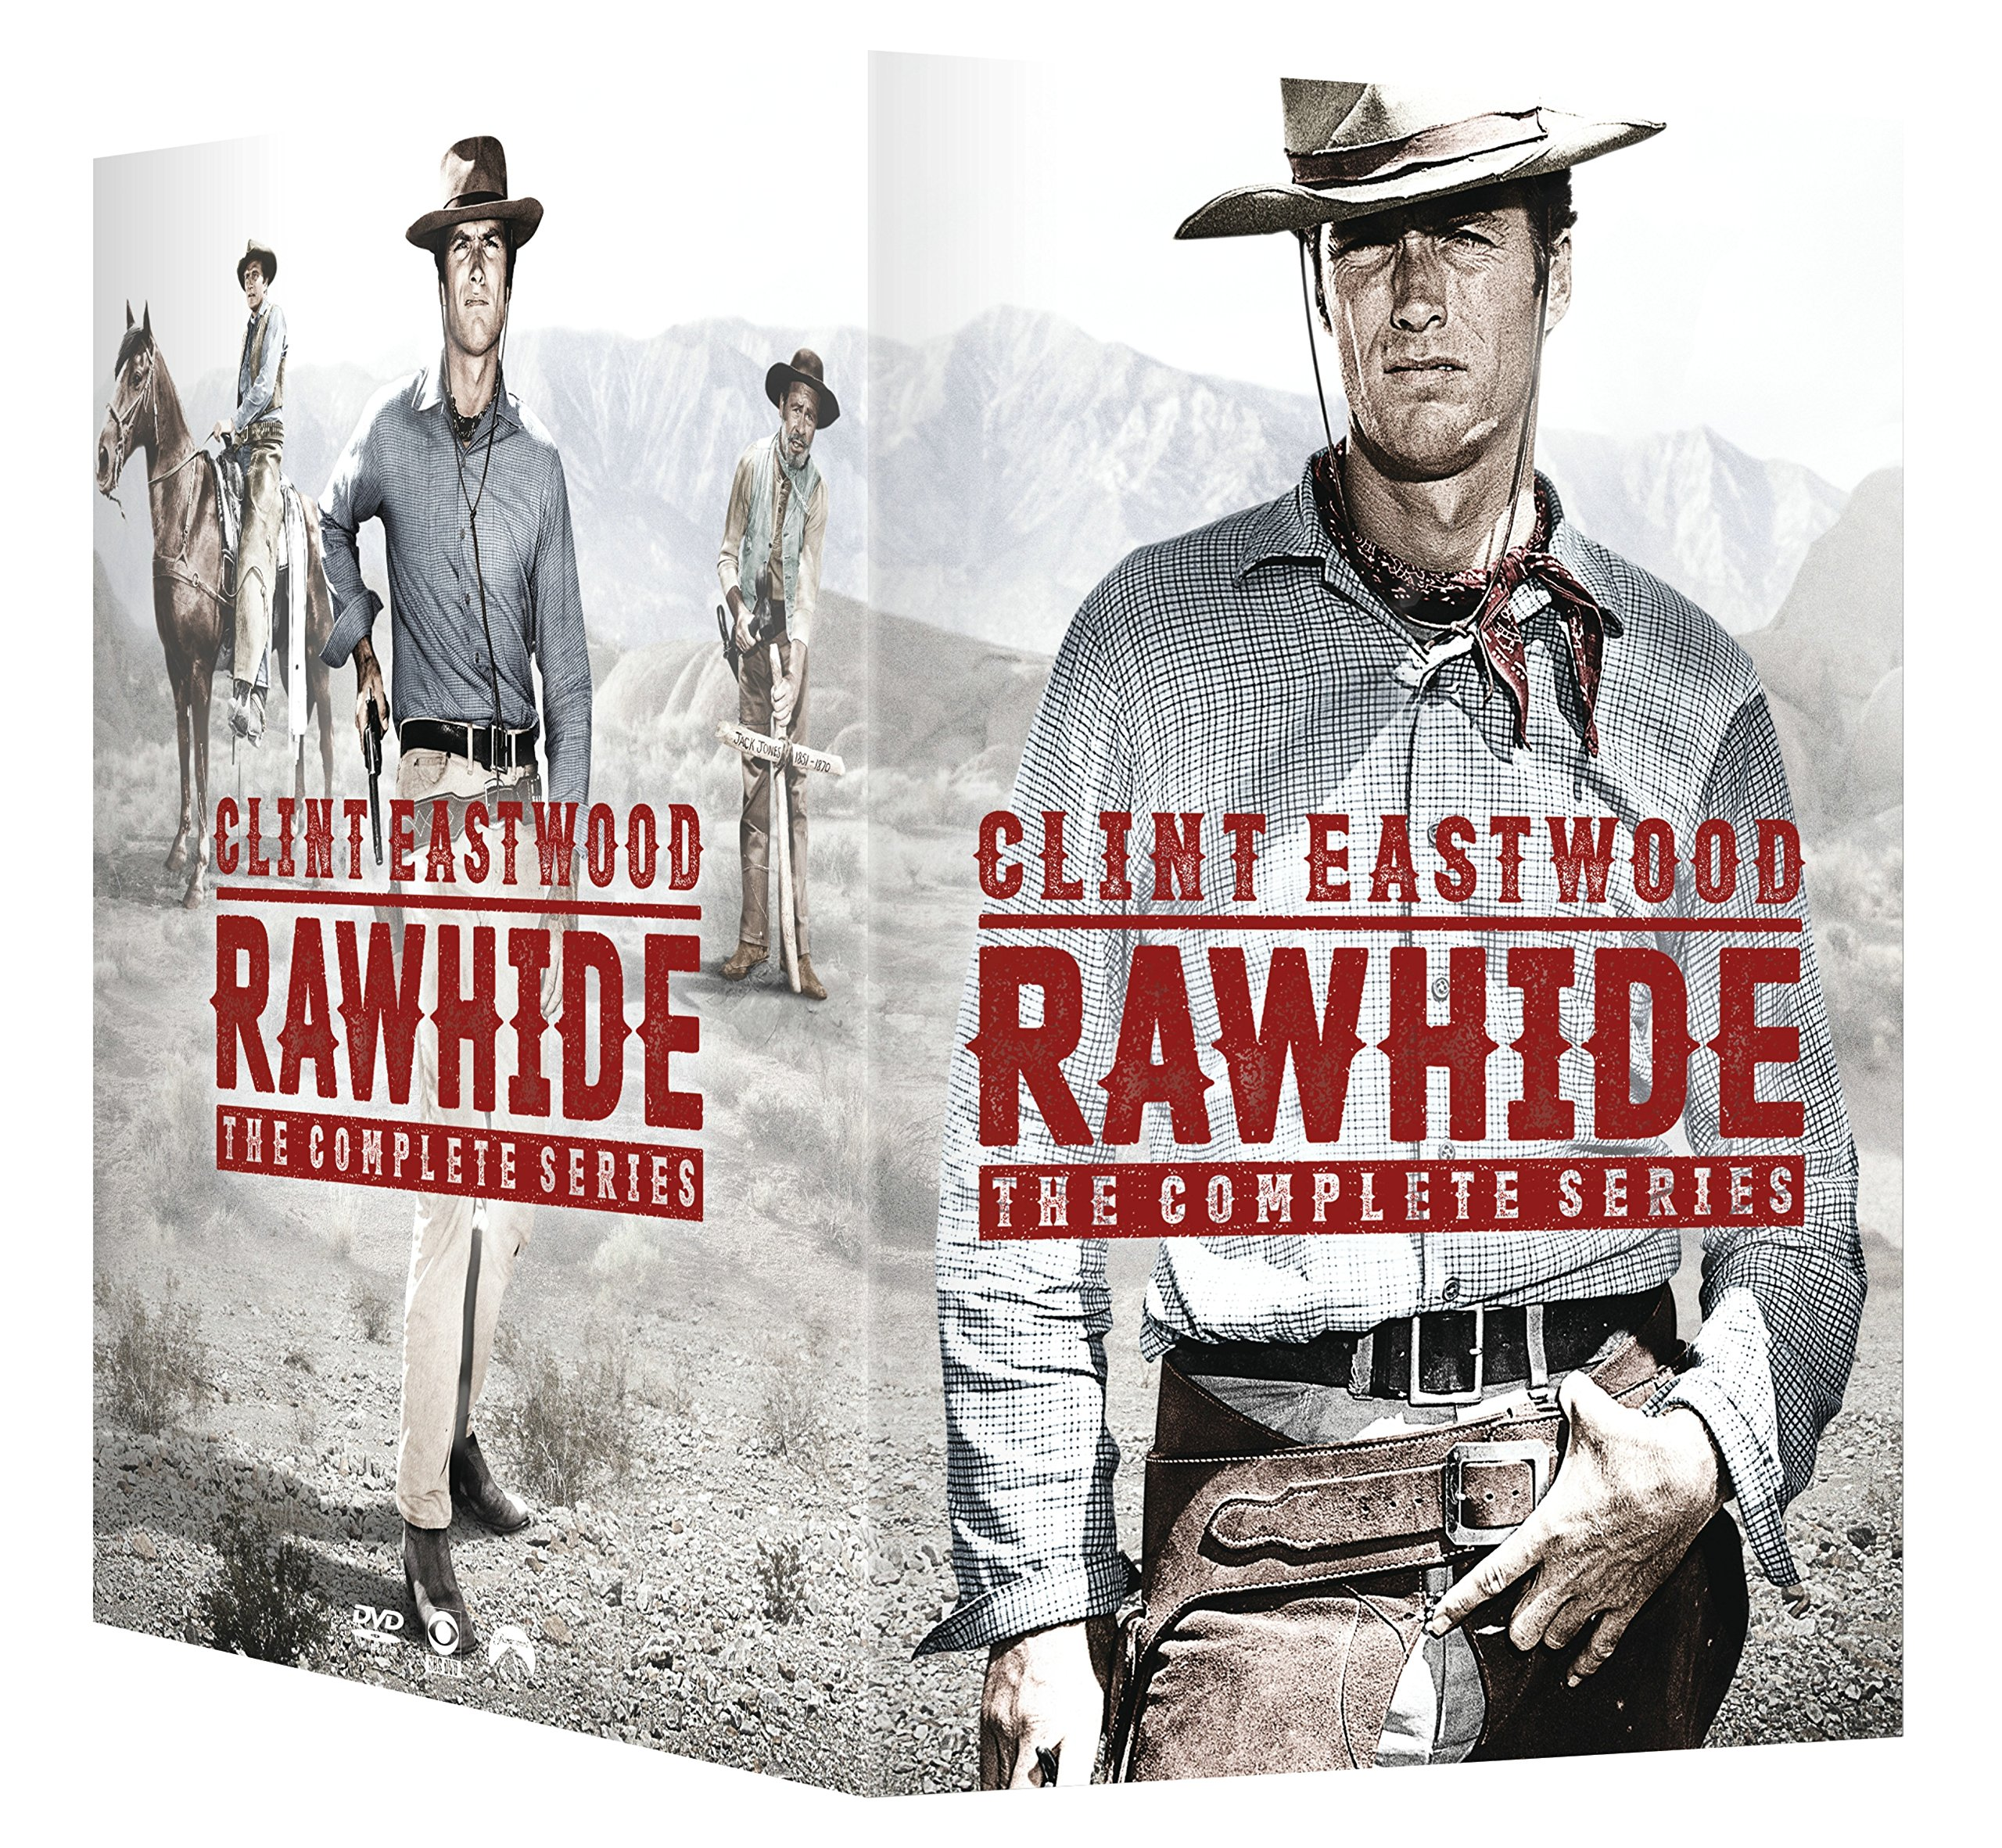 Rawhide: The Complete Series by Paramount